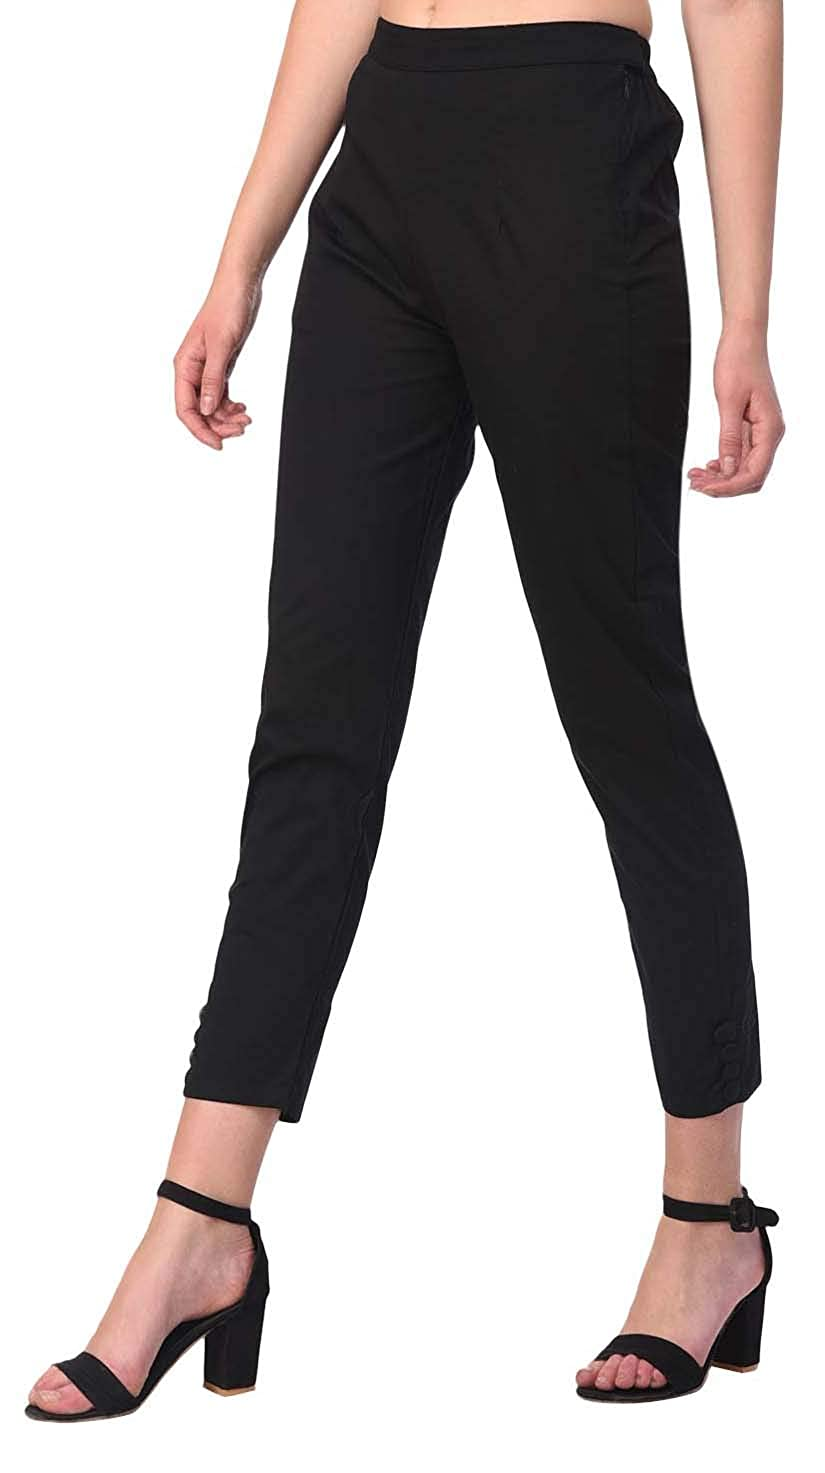 Buy Fashionyet Cotton Lycra Casual Cigarette Pants Trousers For Women Combo At Amazon In